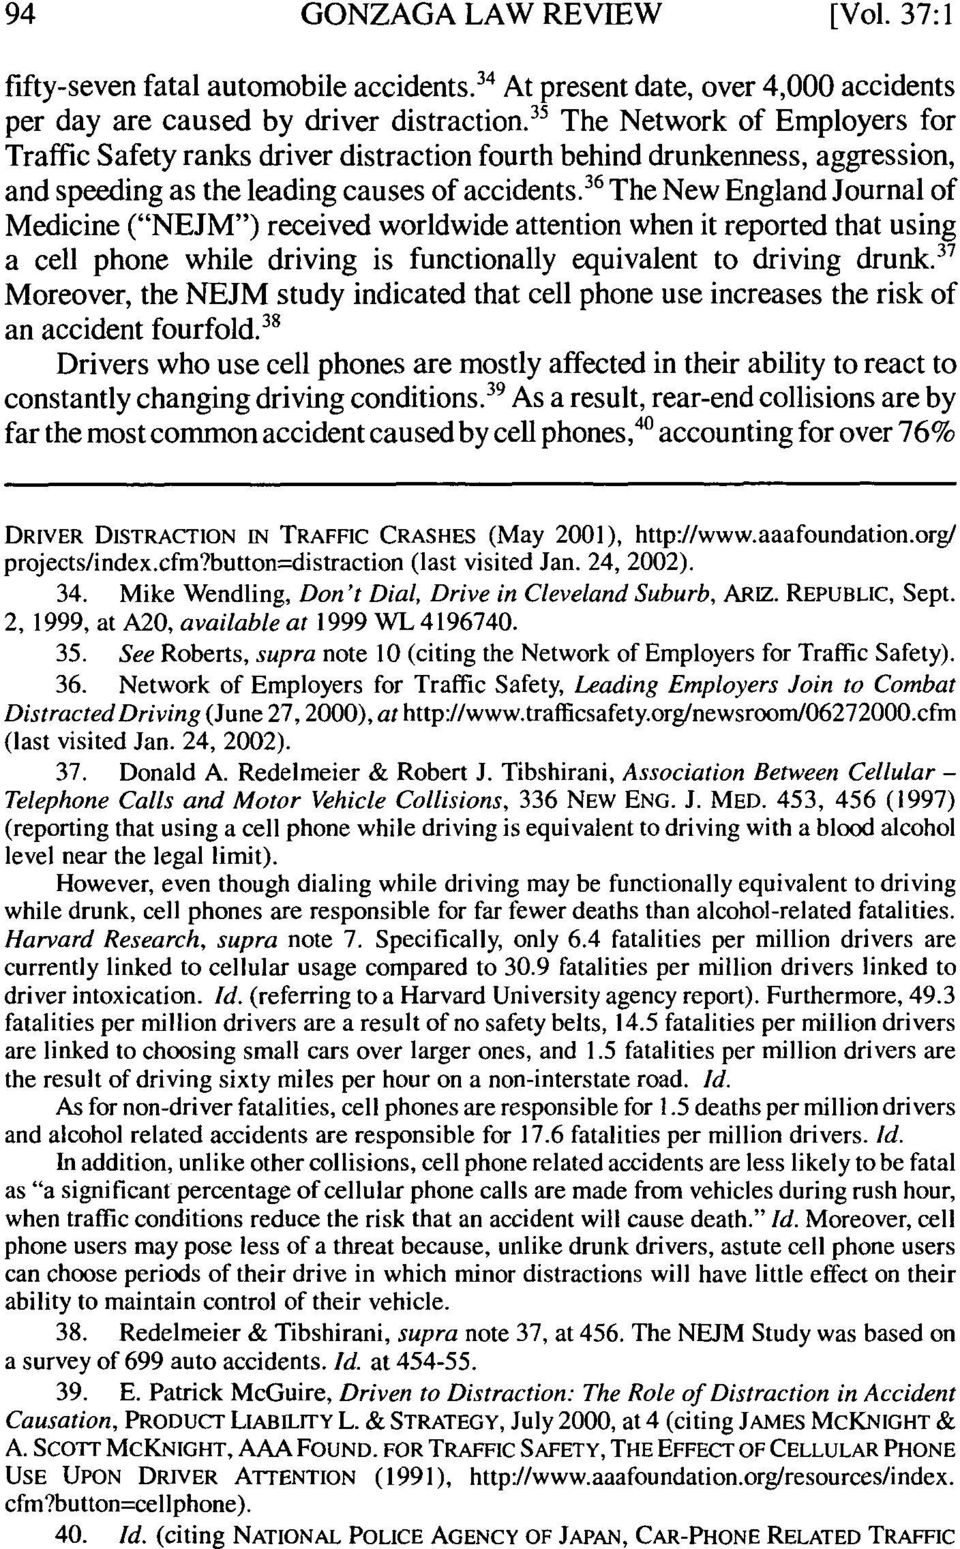 "36 The New England Journal of Medicine (""NEJM"") received worldwide attention when it reported that using a cell phone while driving is functionally equivalent to driving drunk."